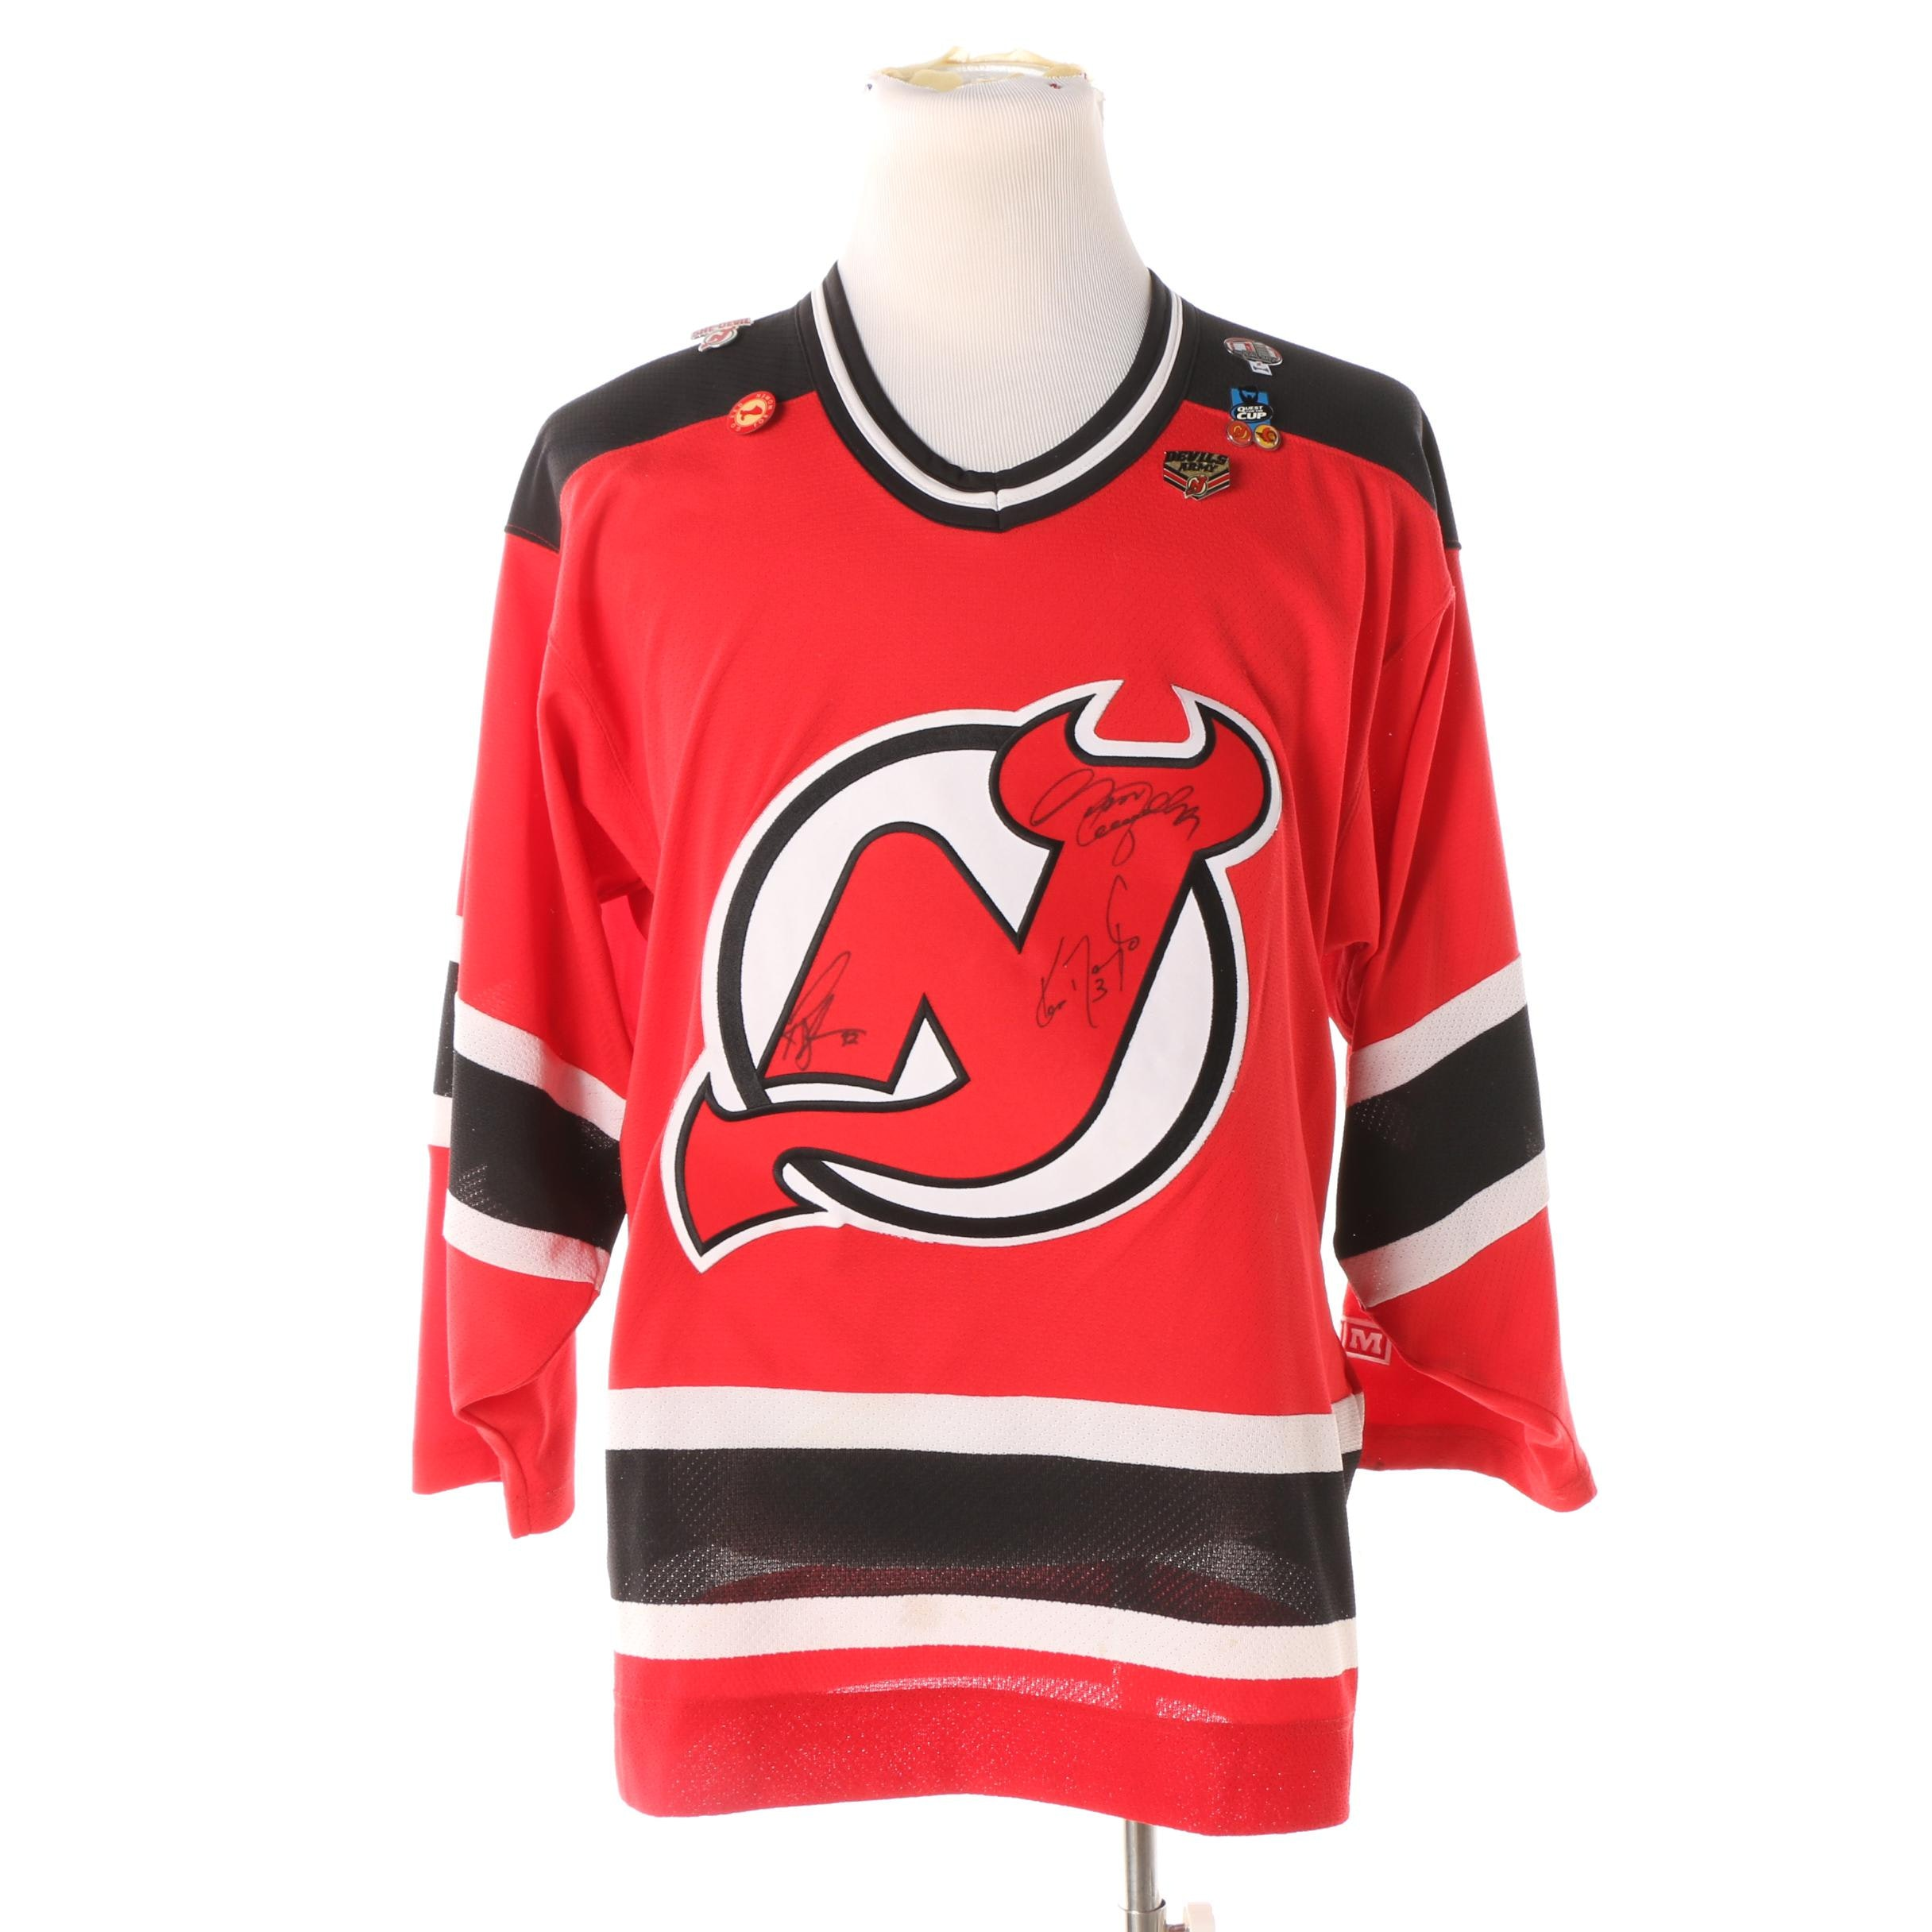 Ken Daneyko and Rob Skrlac Autographed New Jersey Devils Jersey, circa 2003